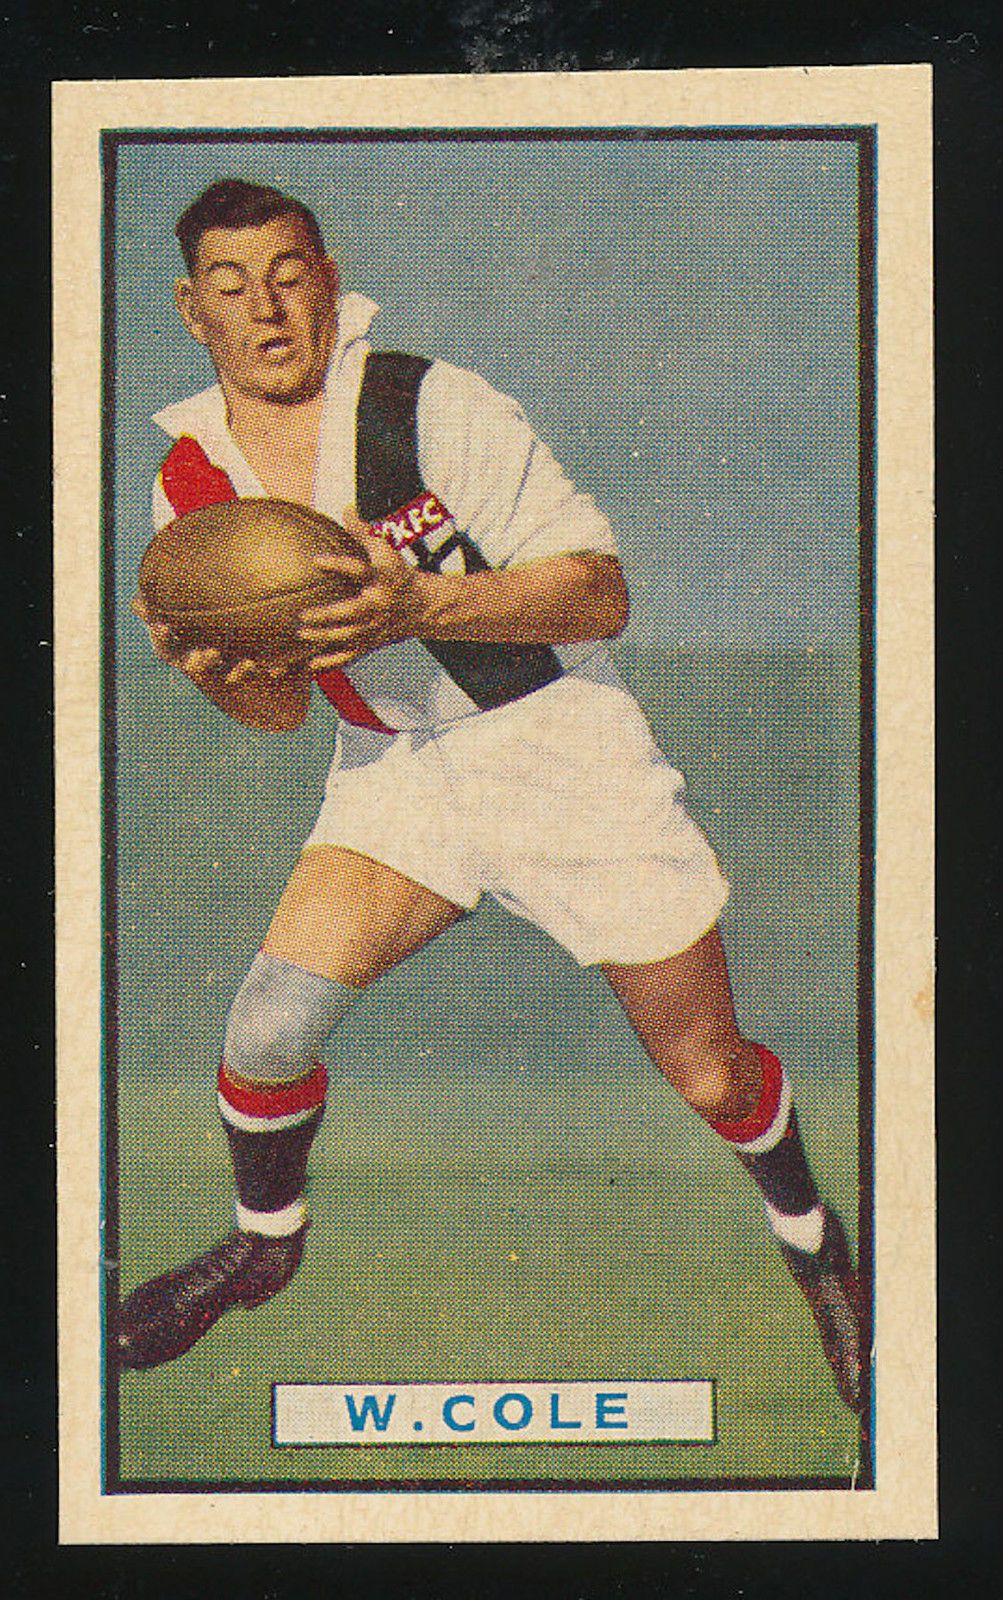 1939 Allens Footballers Card Billy Cole St Kilda Saints Rare Error Card Vfl 12 00 St Kilda Australian Football Football Cards